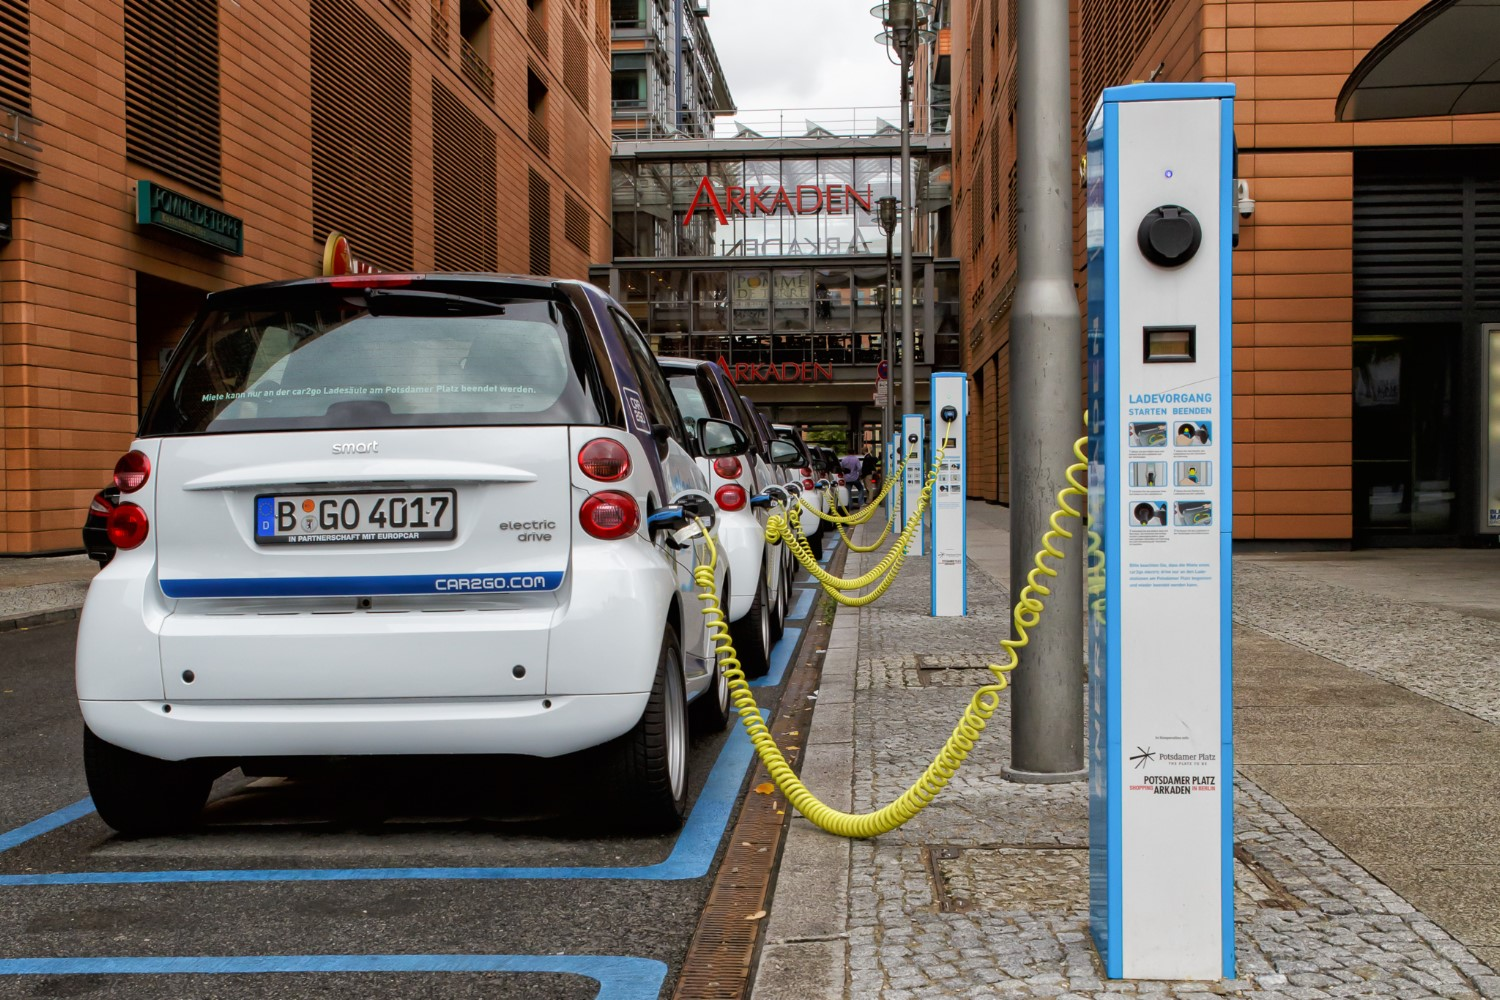 Curbside charging in Europe is already fairly common